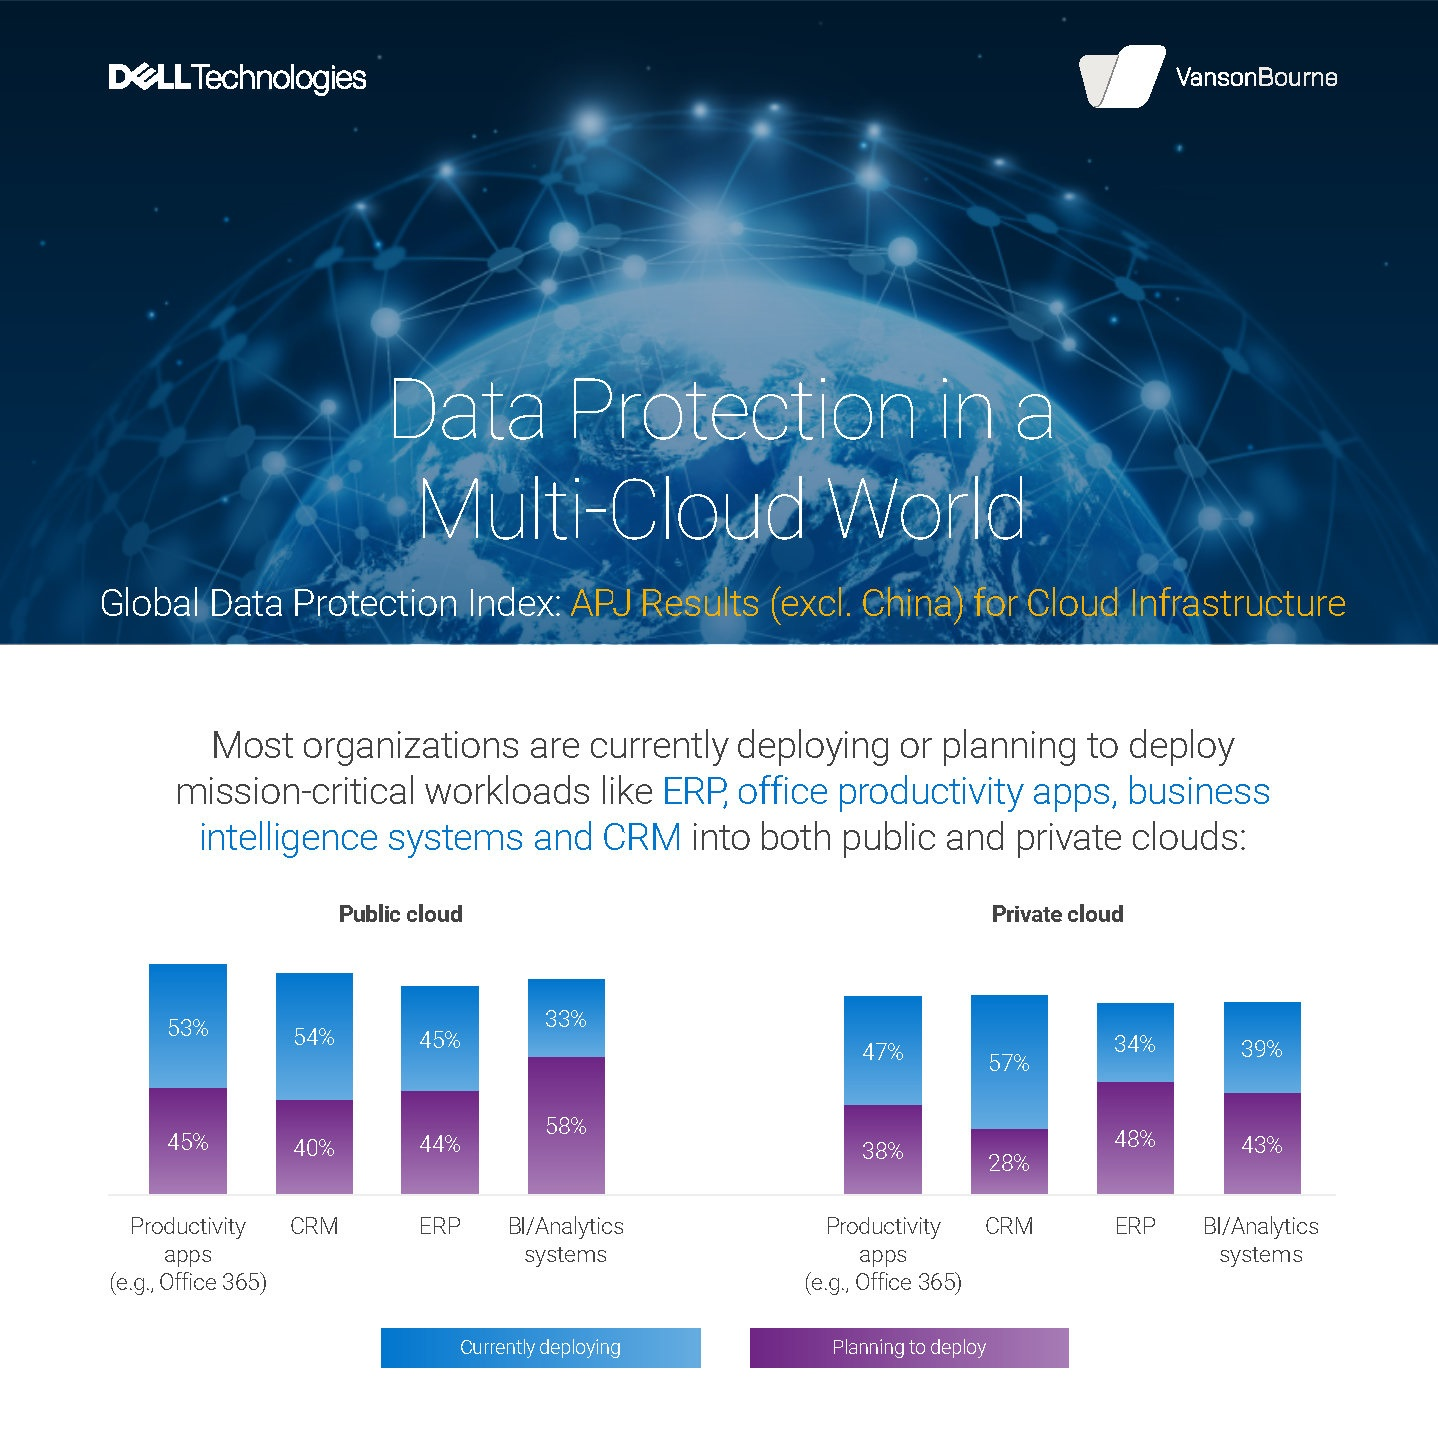 Dell Technologies Research: Cyber Attacks and Disruptive Events Are on the Rise, Affecting 82% of Organizations Surveyed in APJ